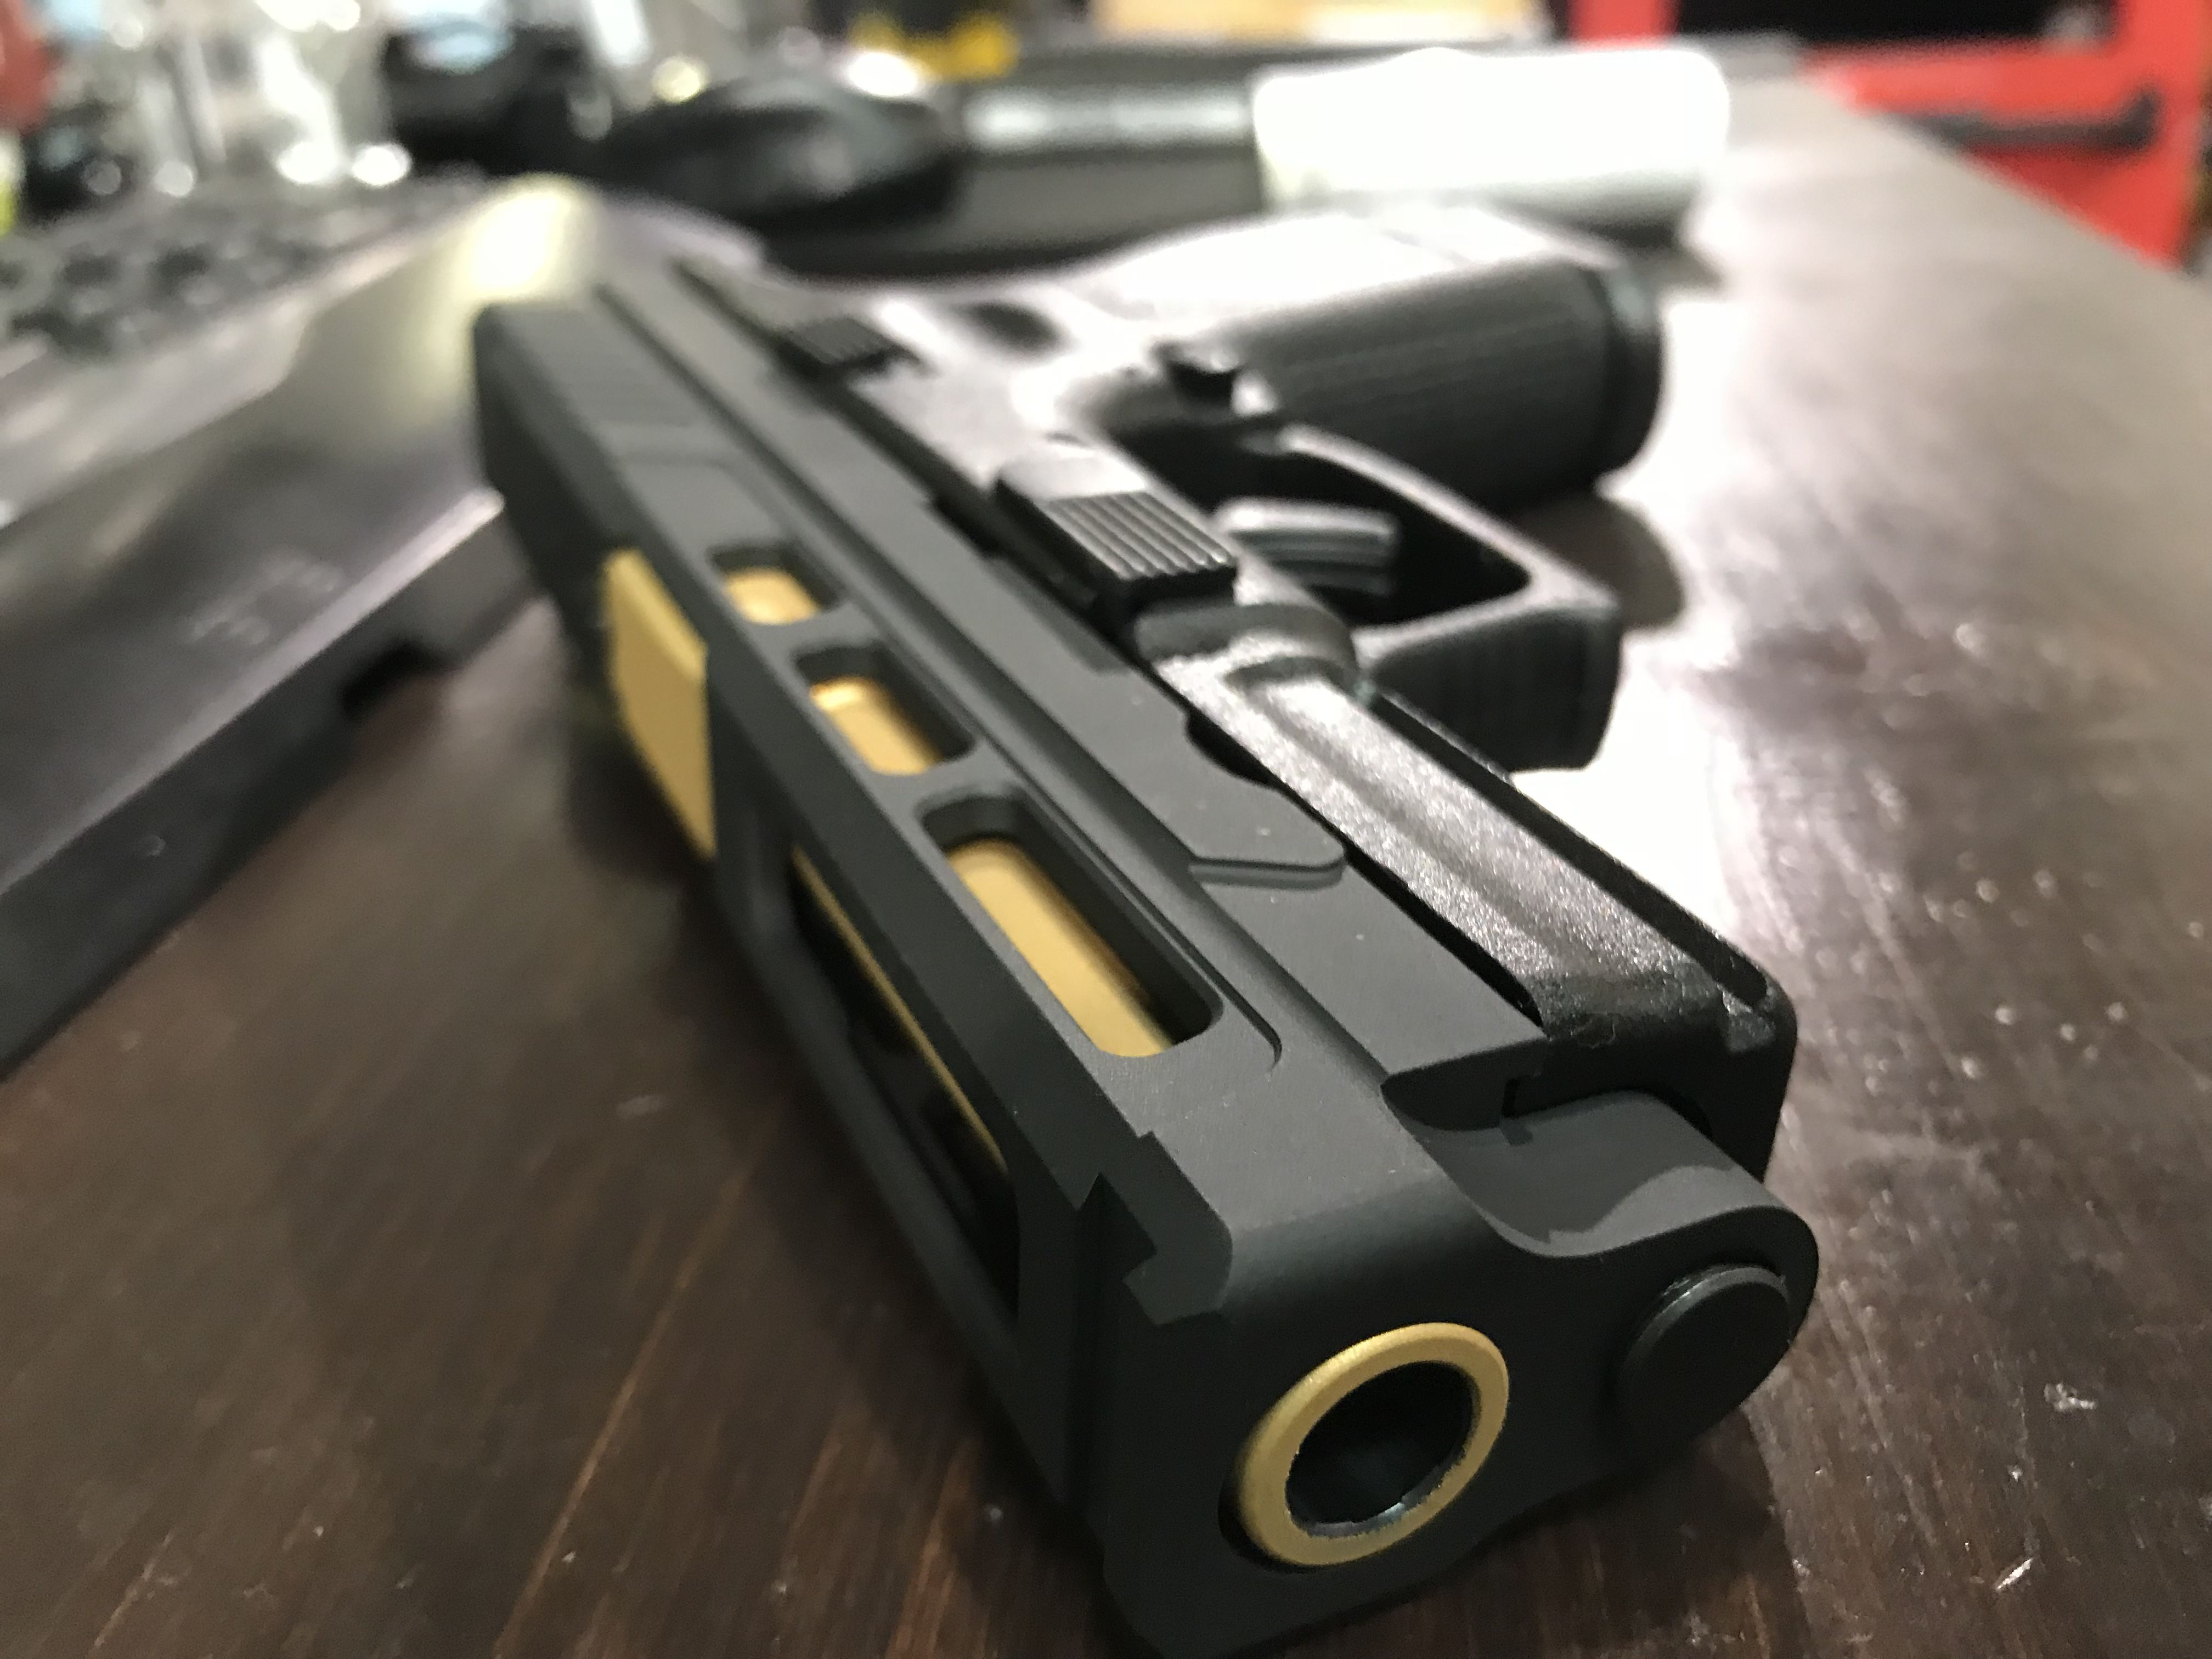 Portals, sites on firearms: a selection of sites